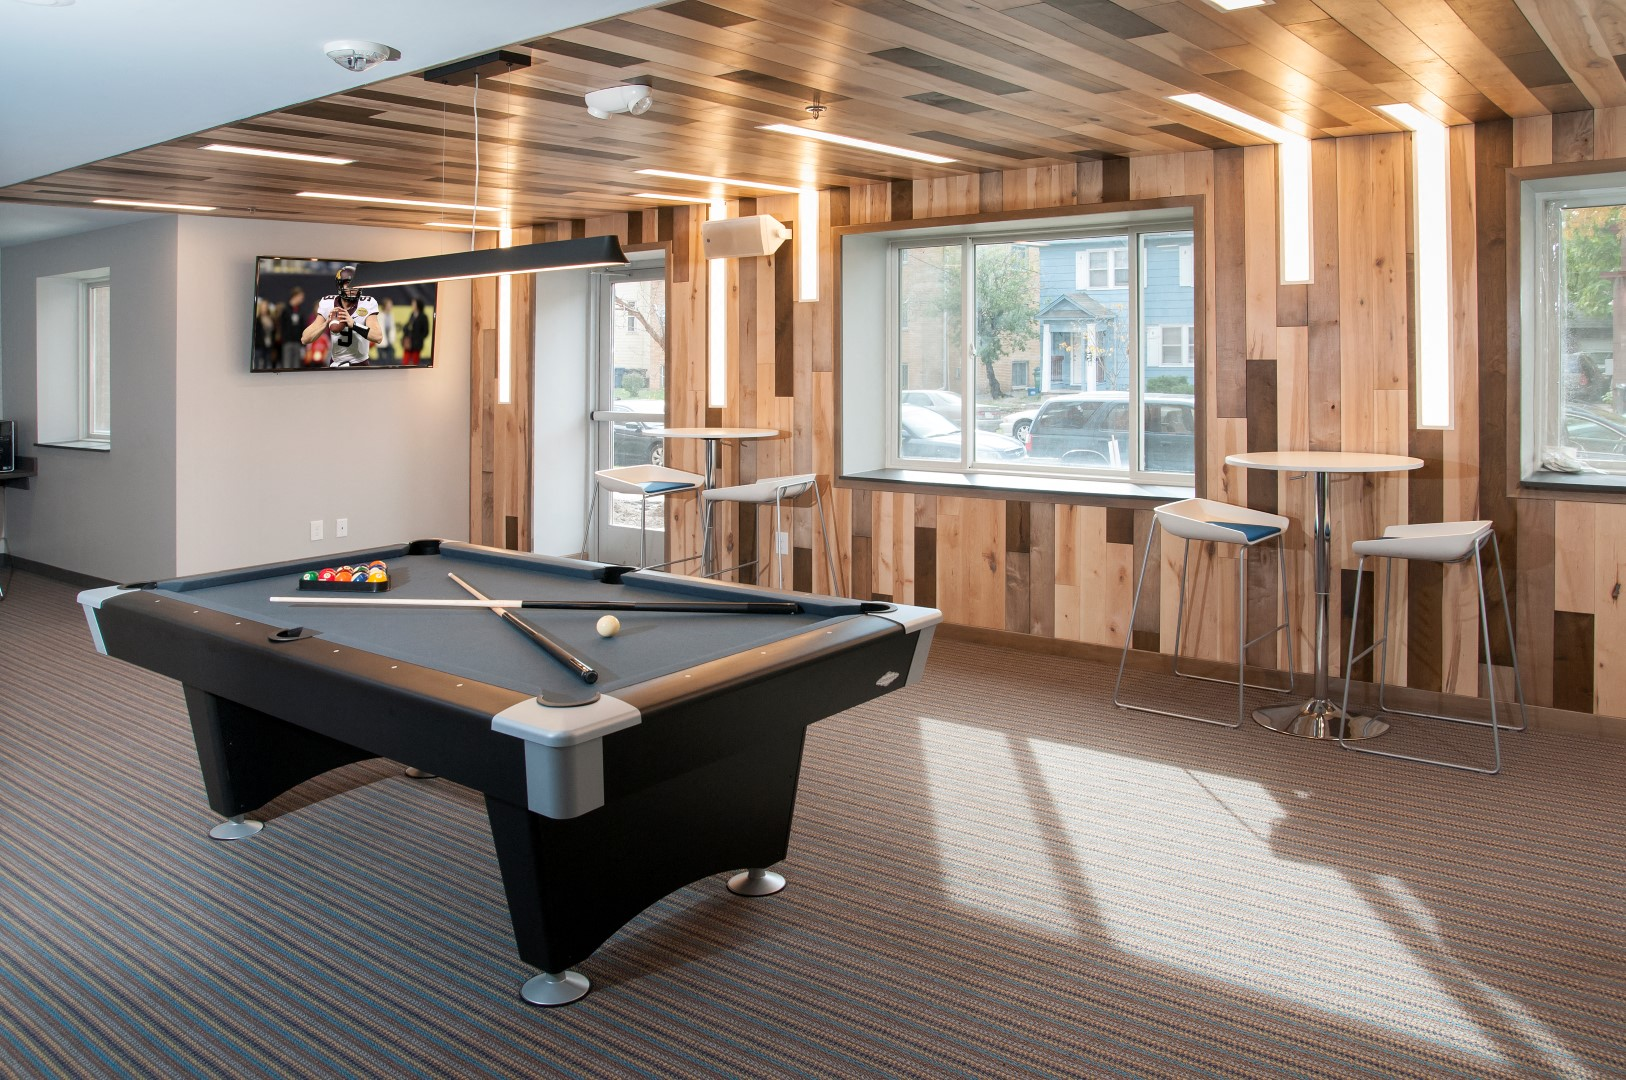 Game Lounge With Billiards At Bierman Place, Minneapolis, MN